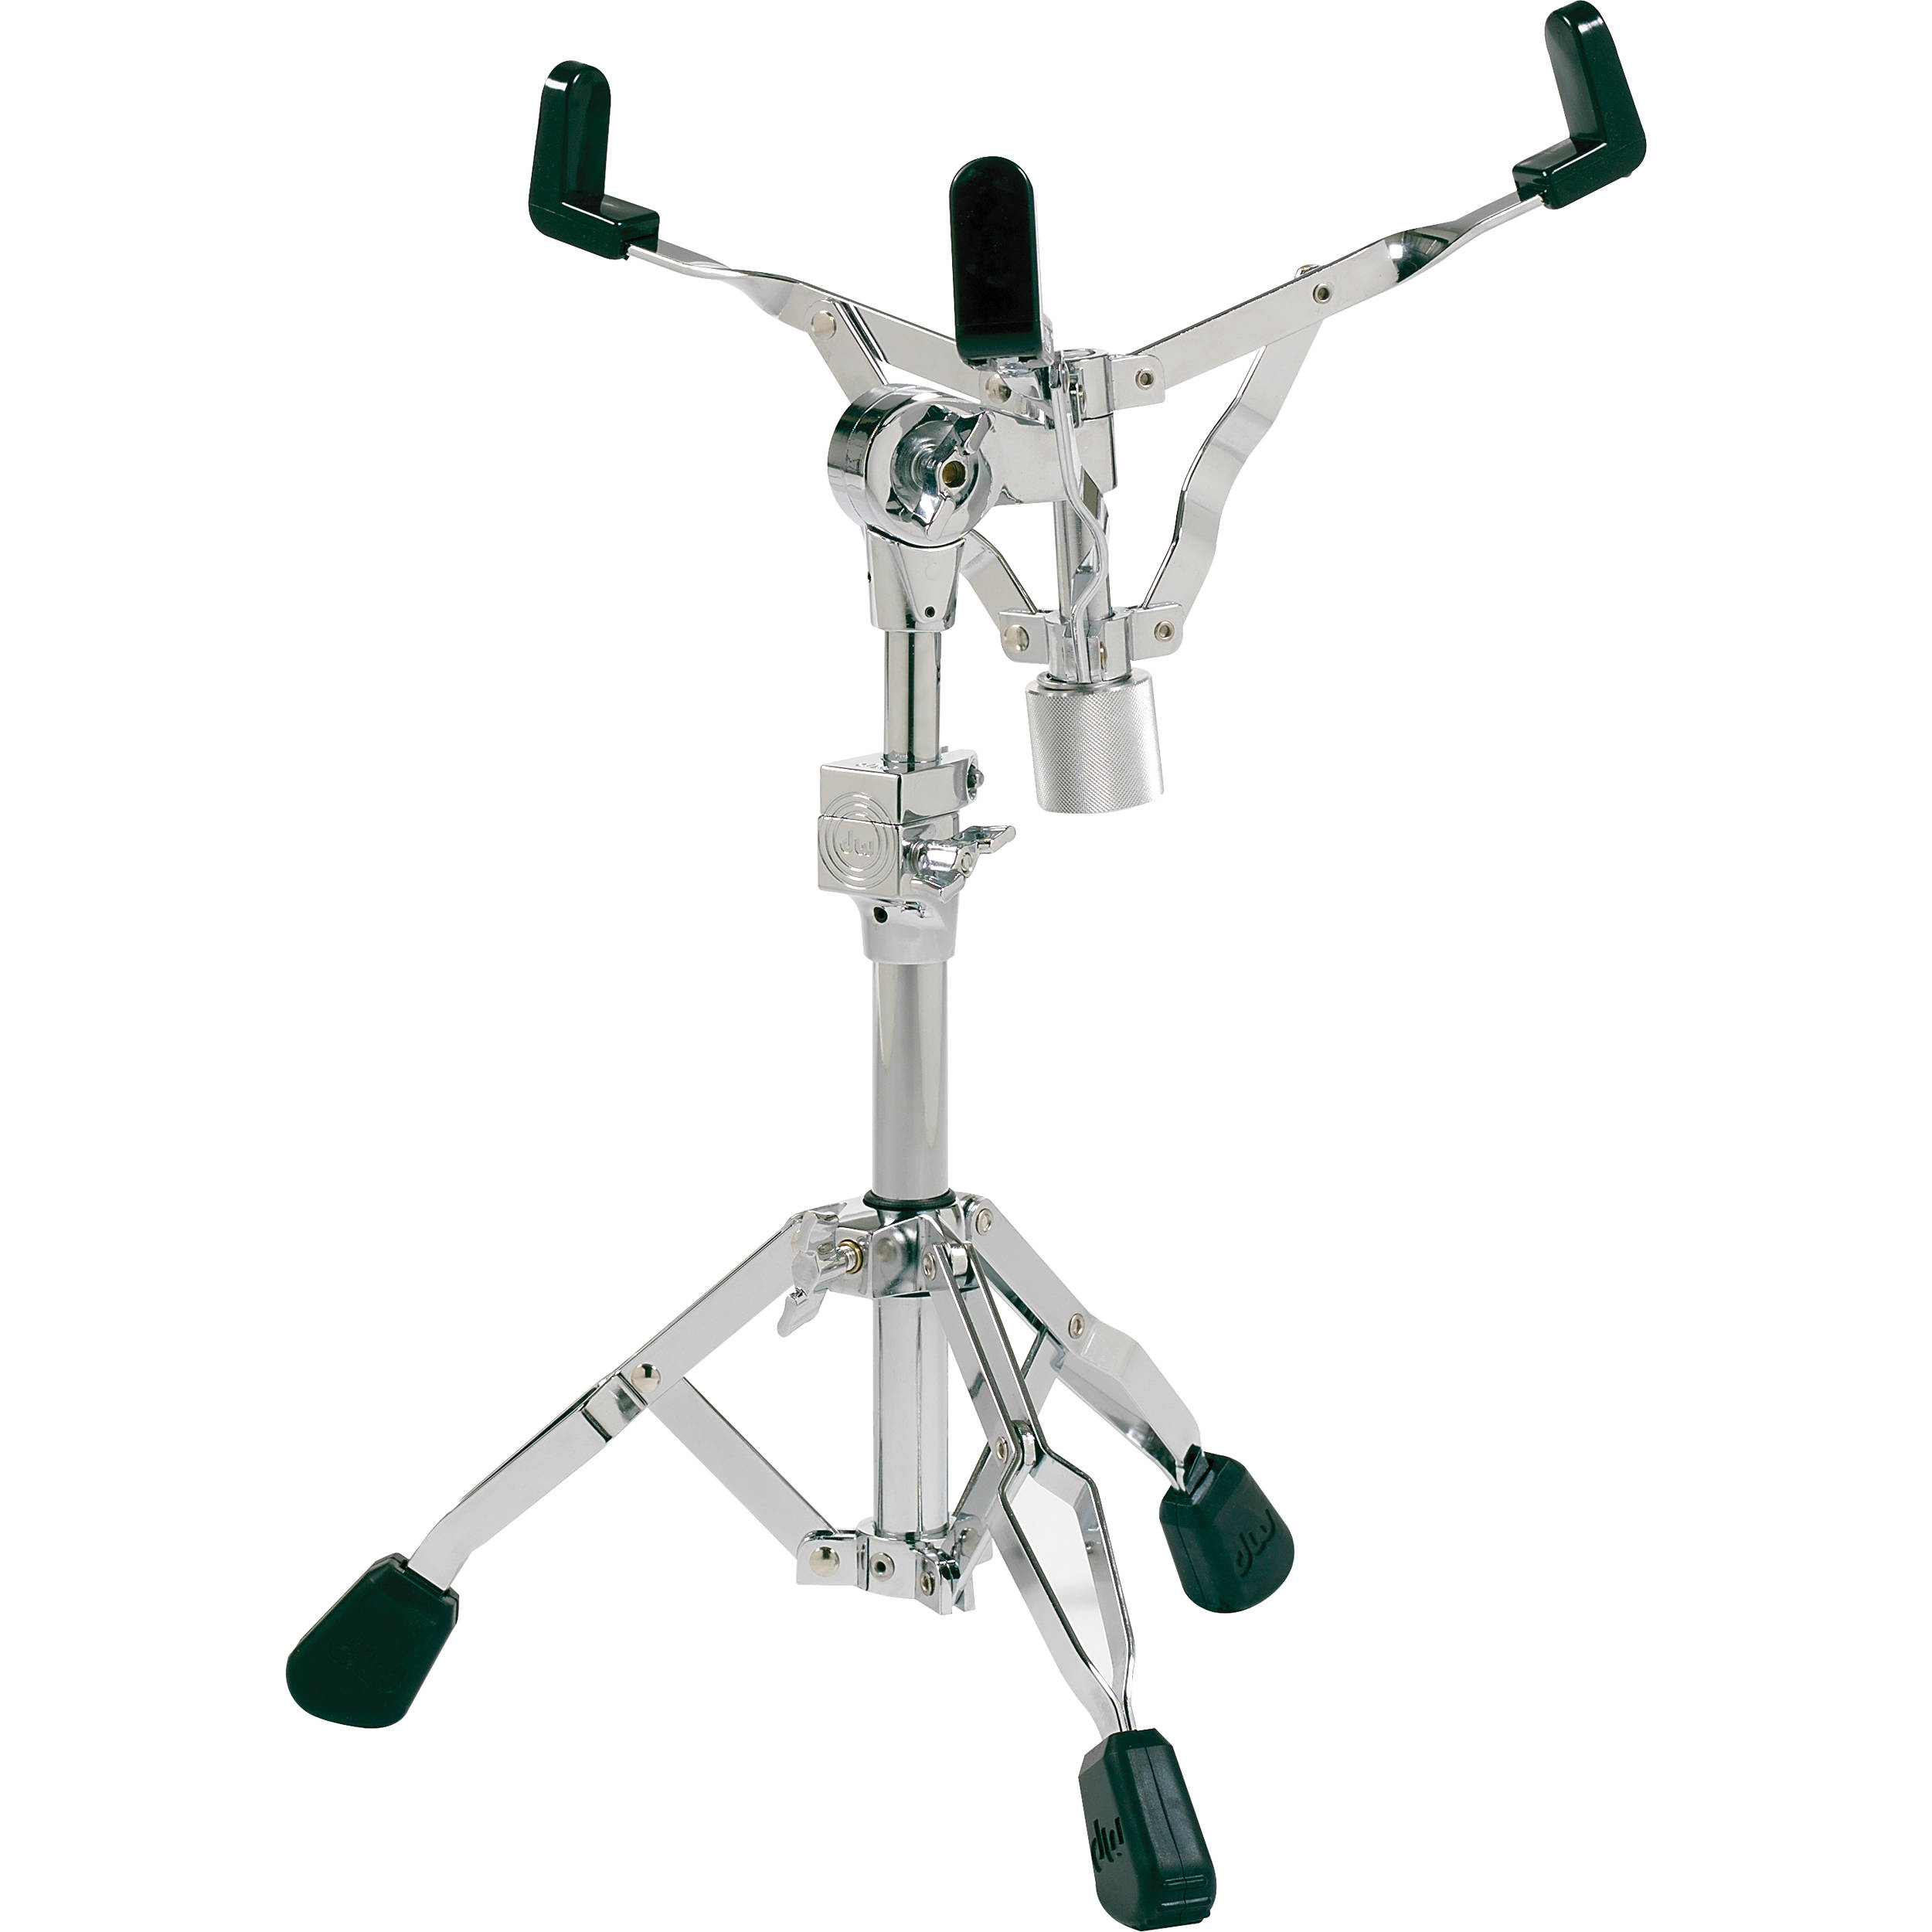 dw drums 3000 series 3300 snare drum stand dwcp3300 b h photo. Black Bedroom Furniture Sets. Home Design Ideas